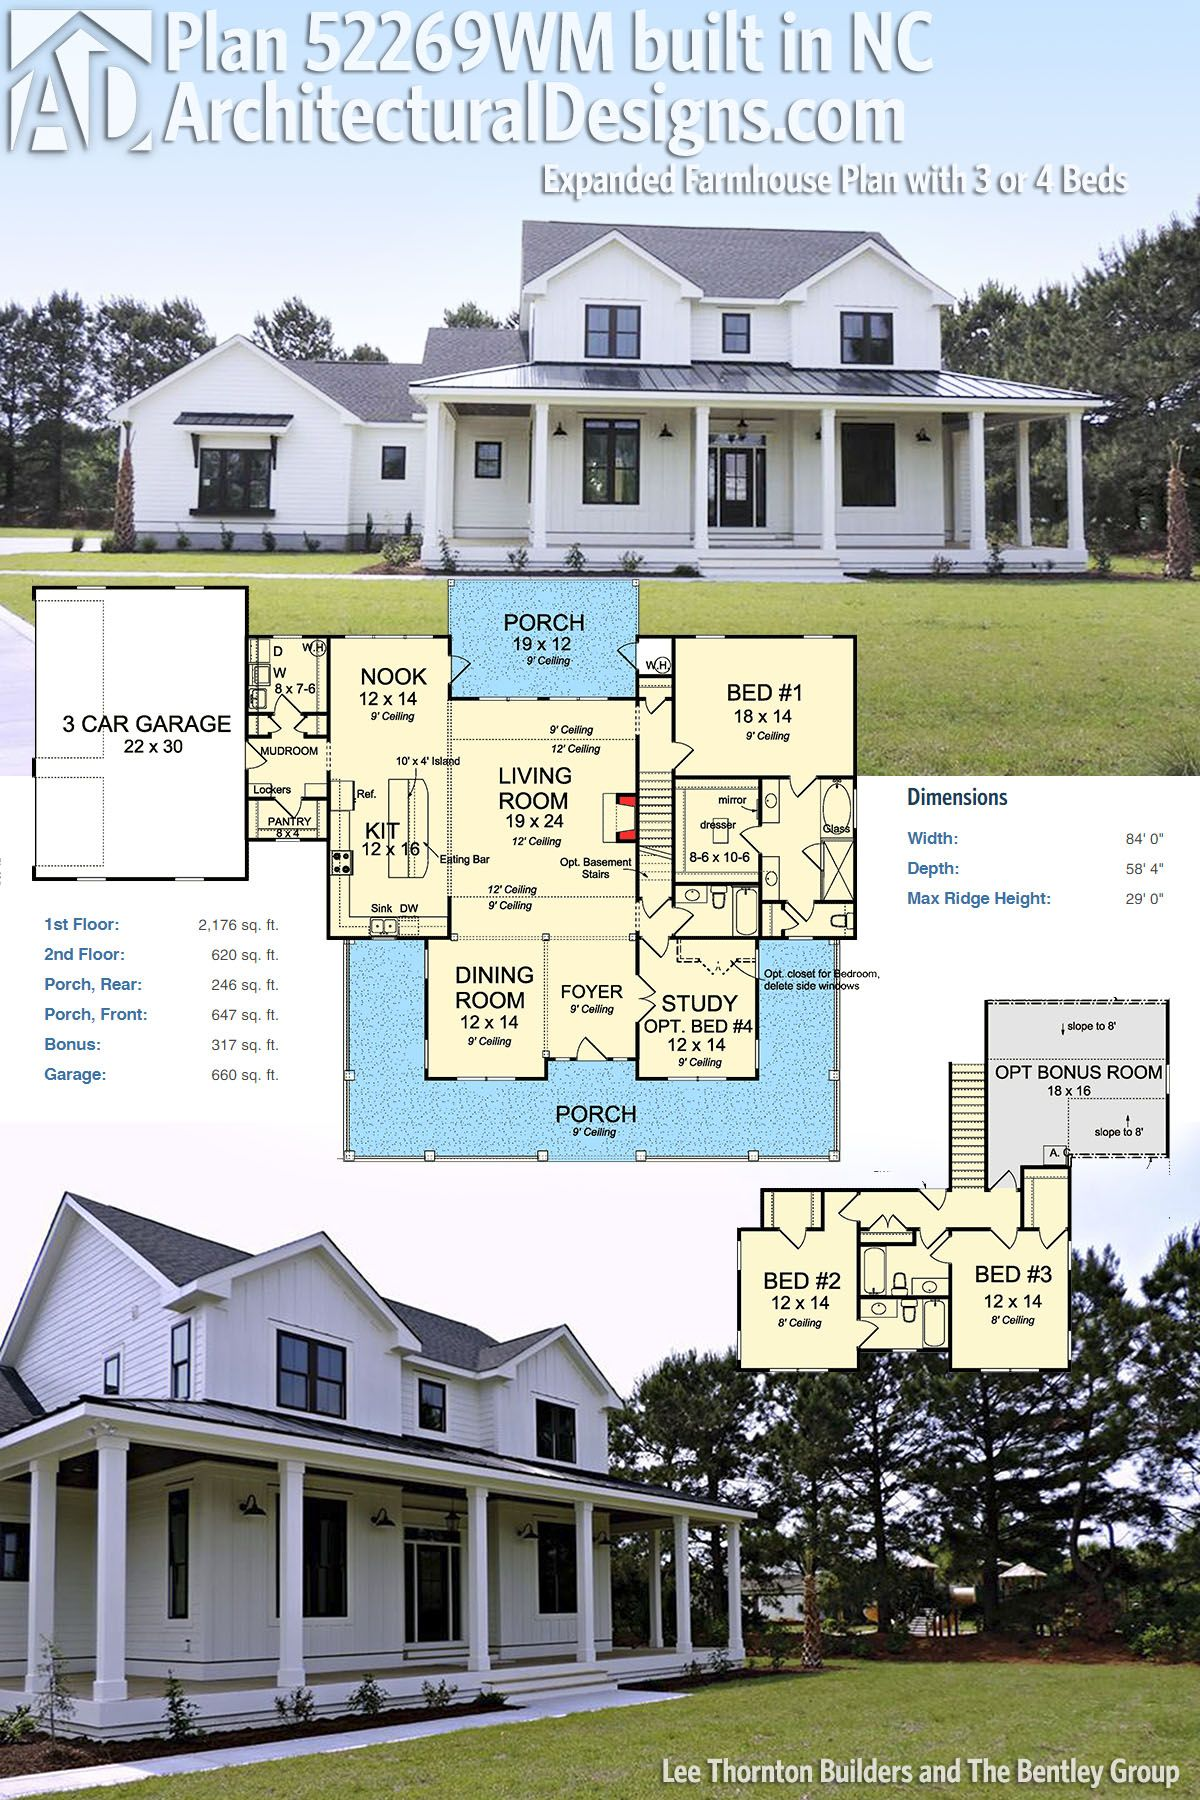 Plan WM Expanded Farmhouse Plan with 3 or 4 Beds